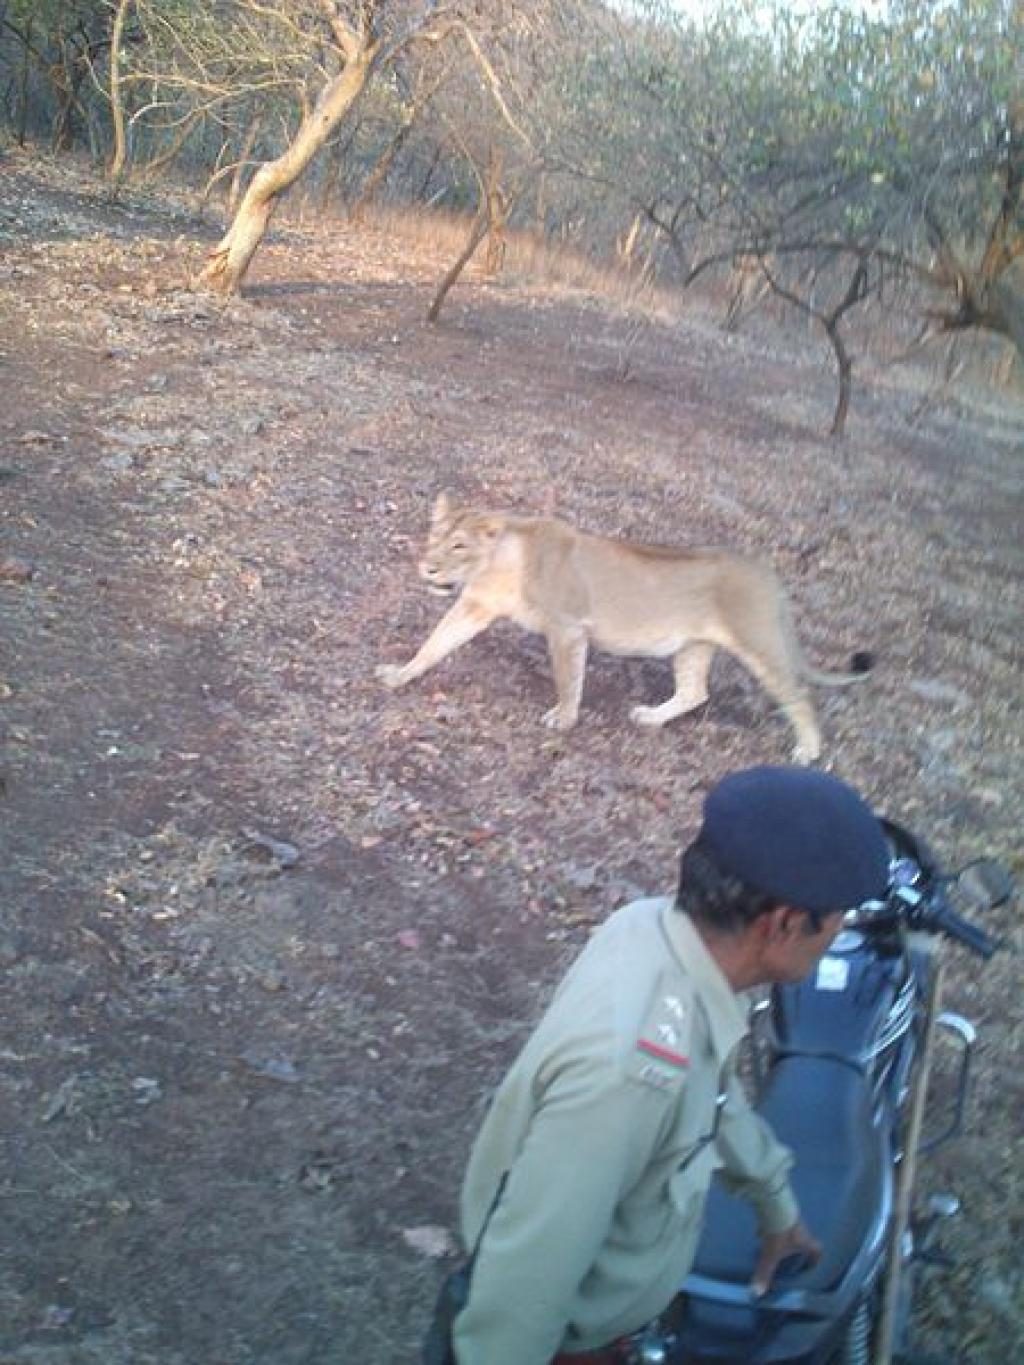 A lioness crosses paths with a policeman in Gir, Gujarat   Credit: WIkimedia Commons